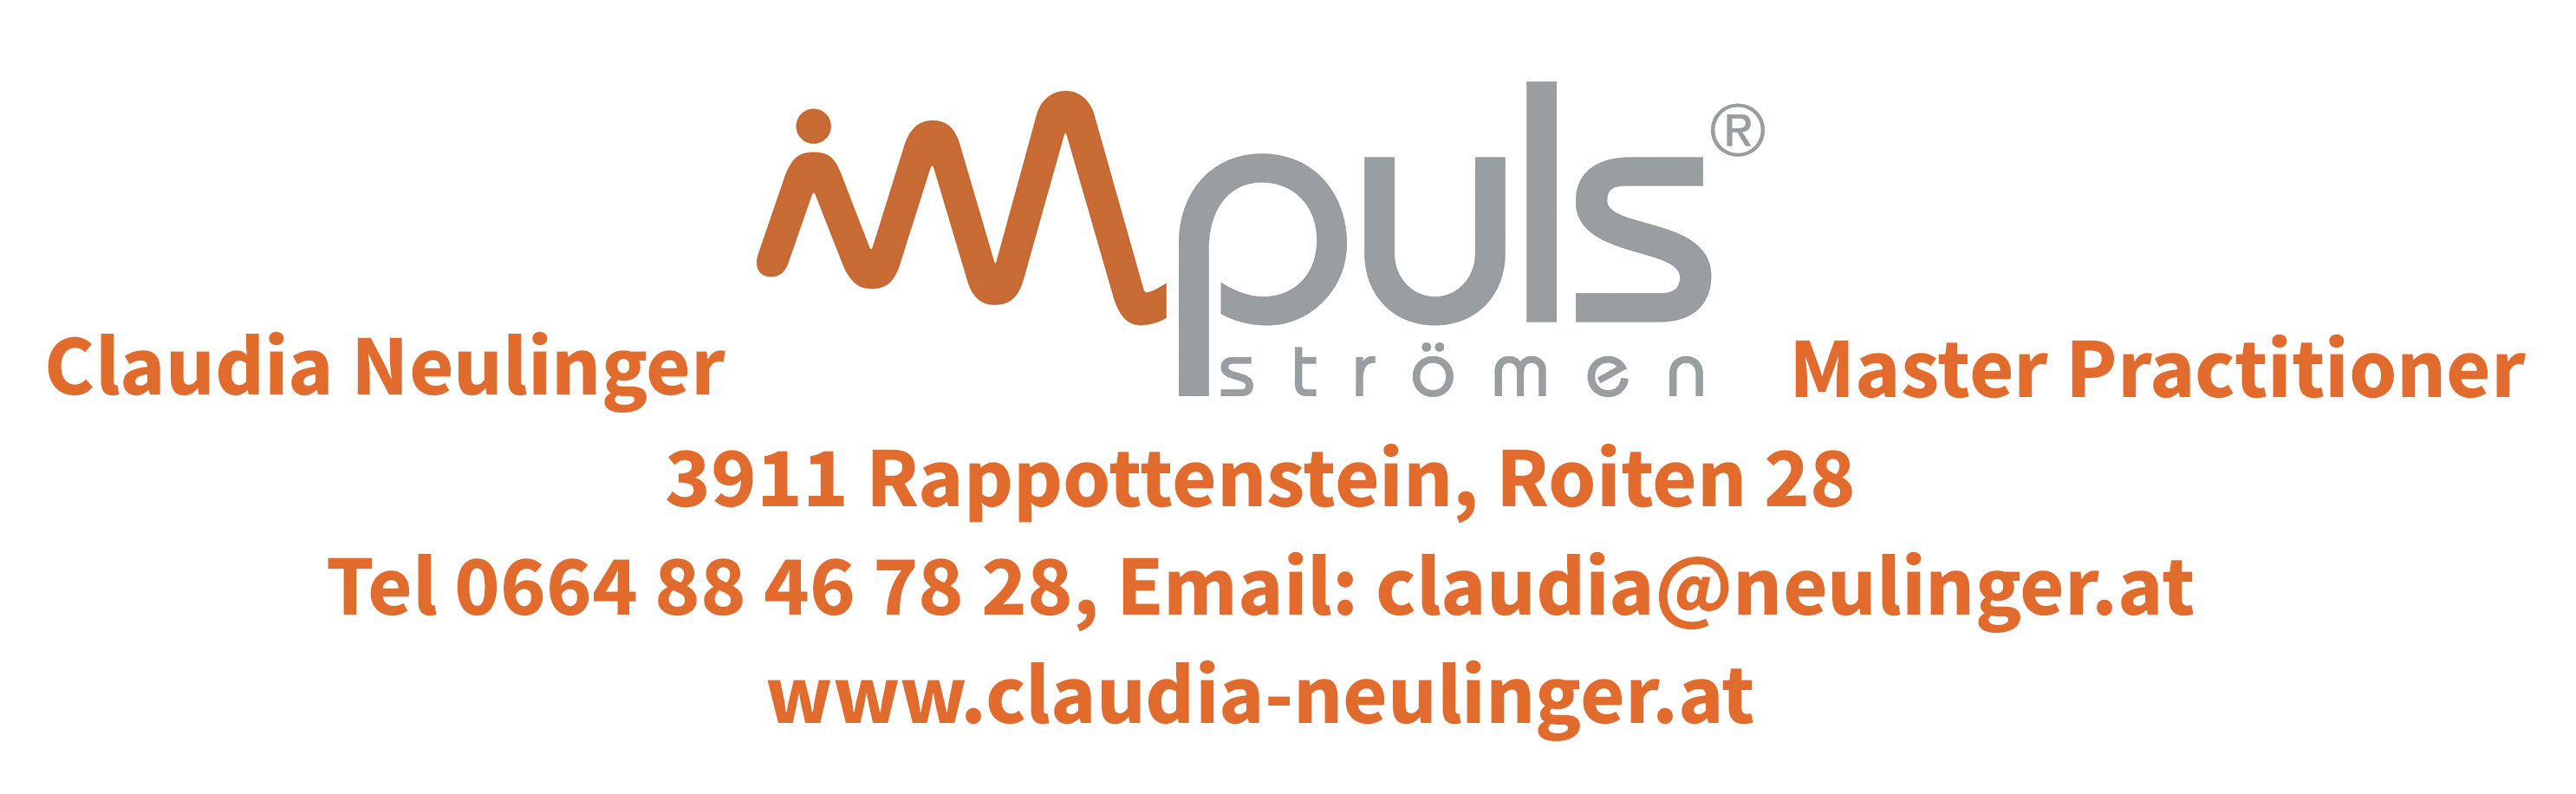 claudia-neulinger-at-2